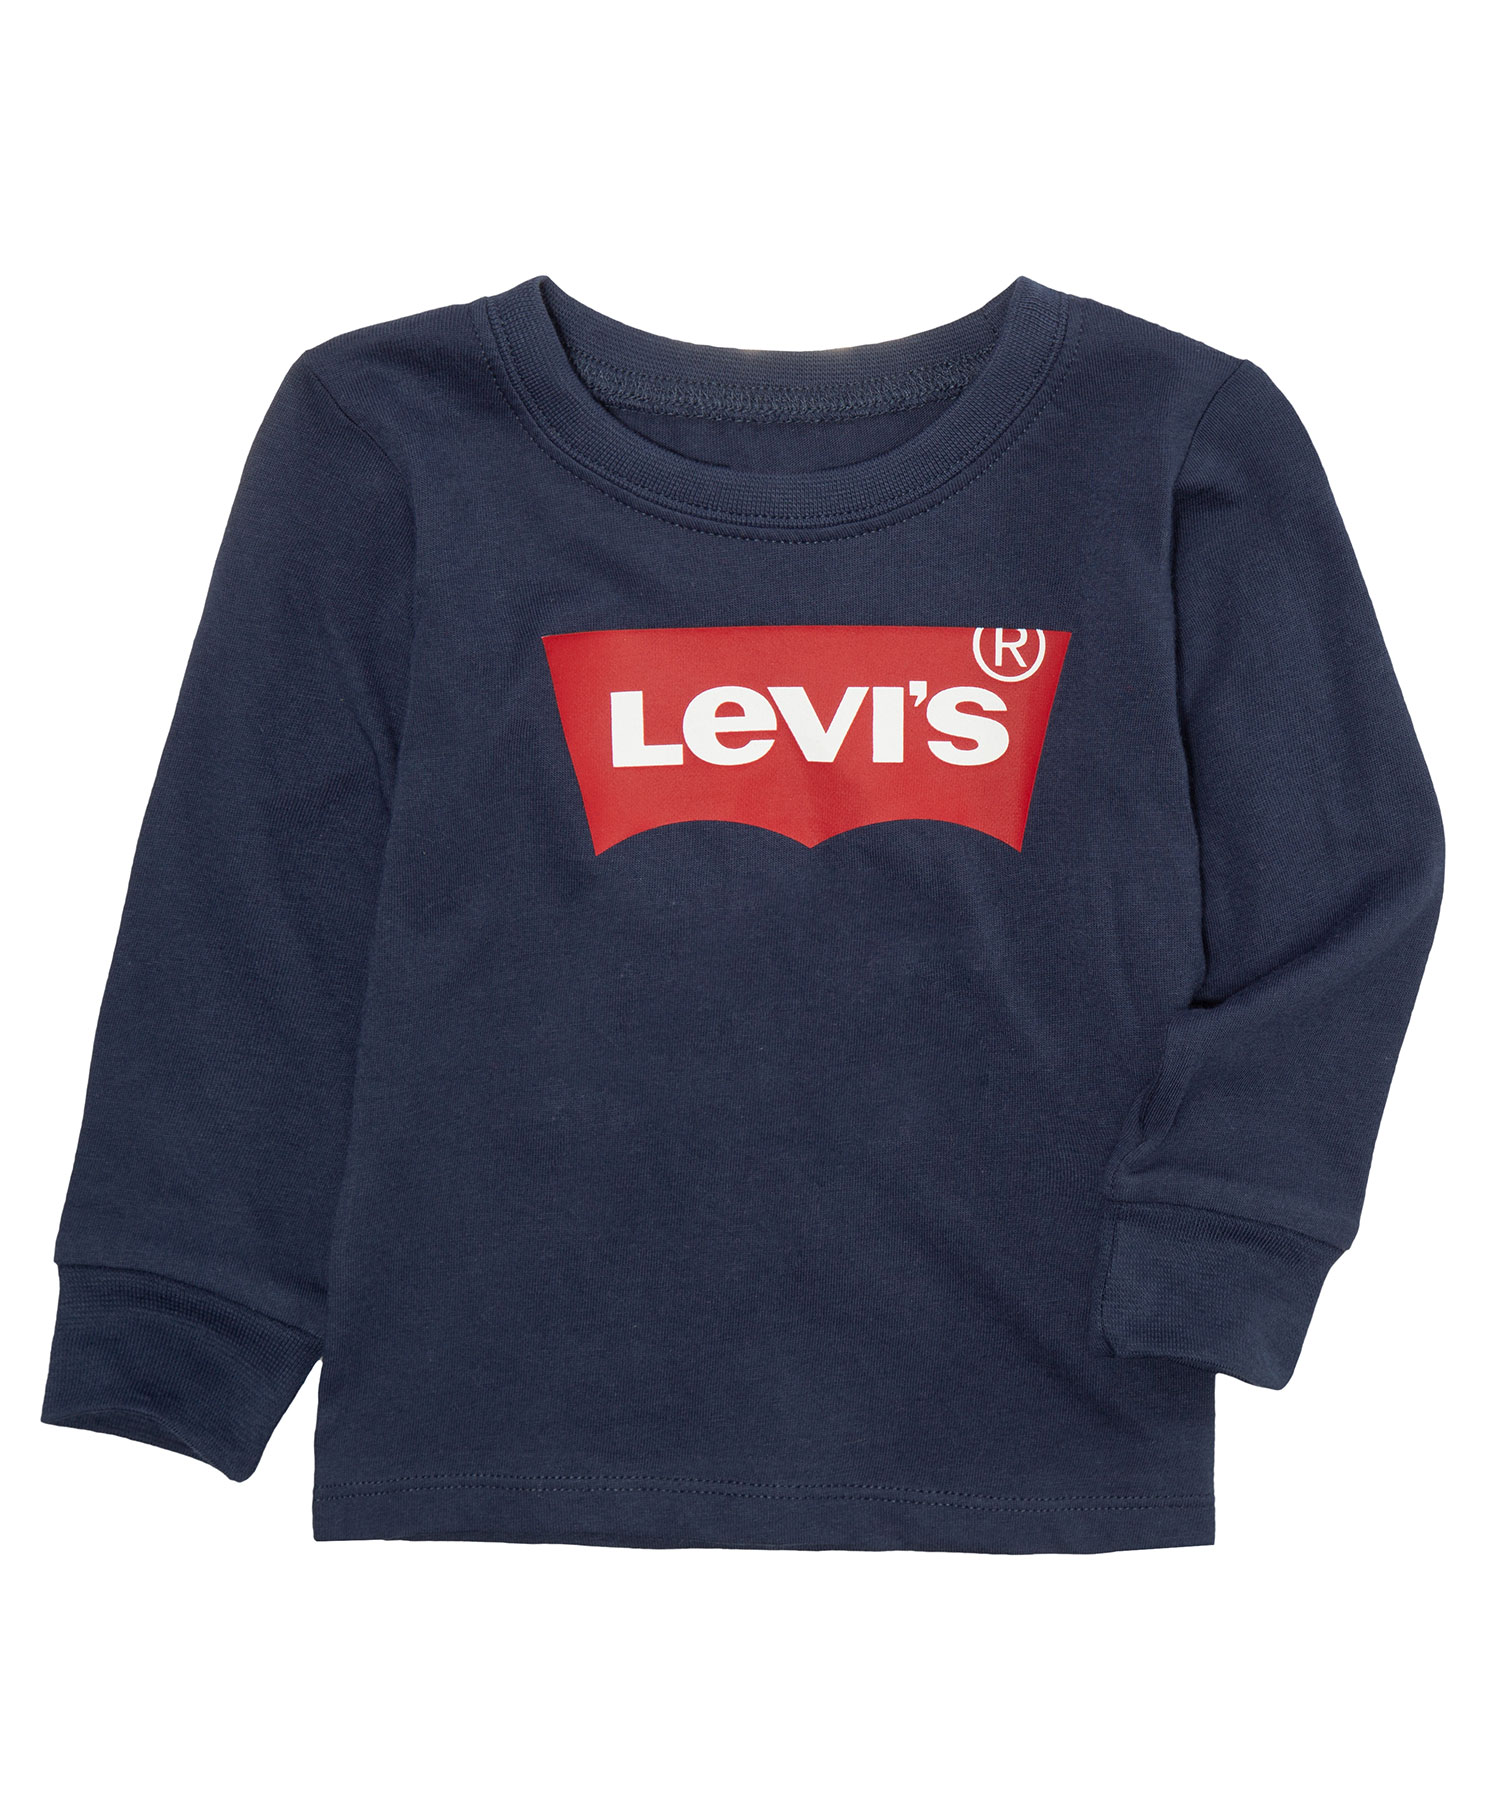 Levi's Batwing LS tee